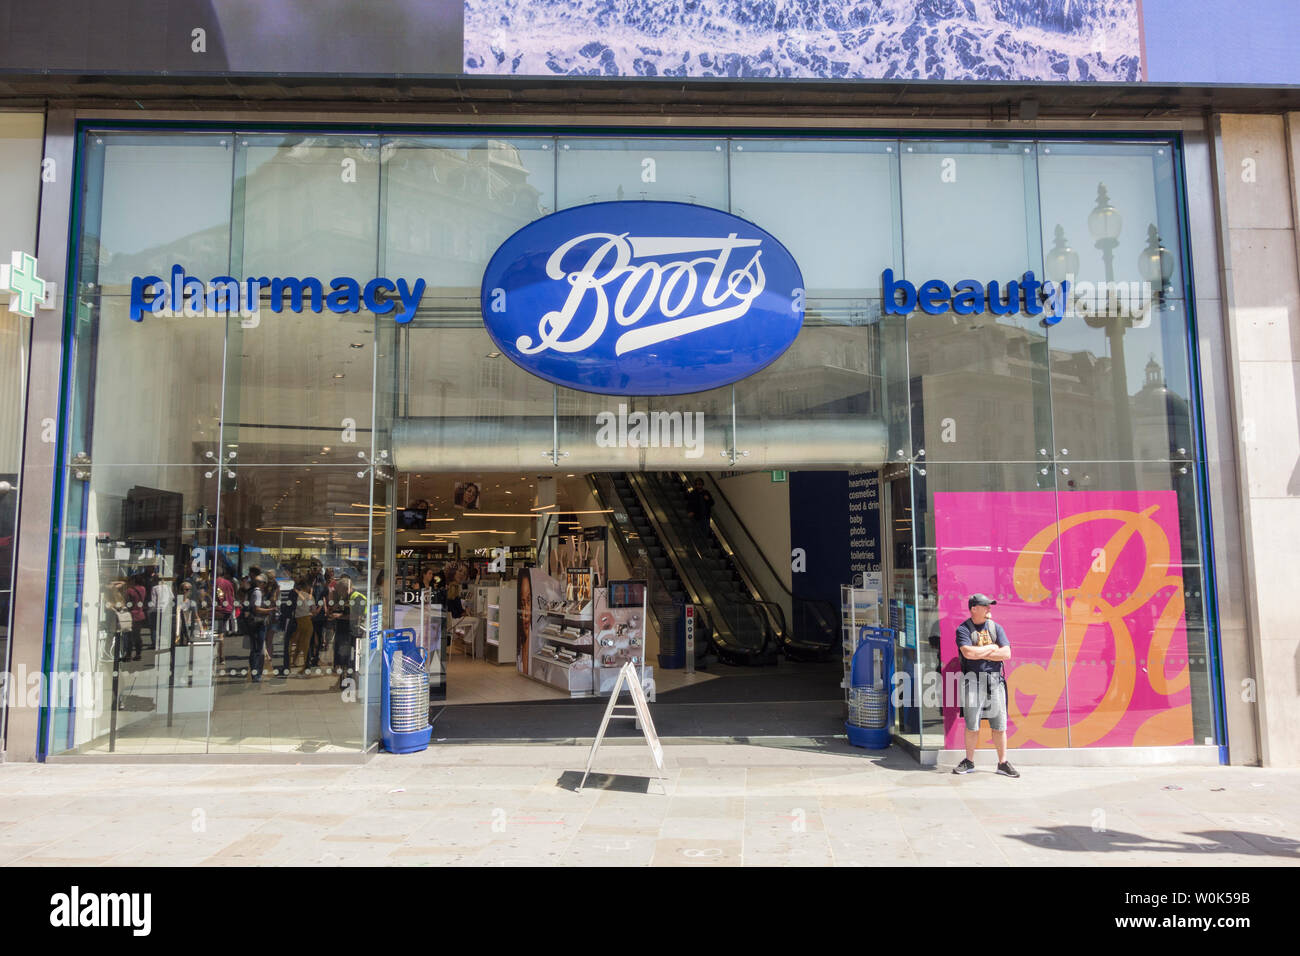 Exterior of Boots Store, Piccadilly Circus, London, UK Stock